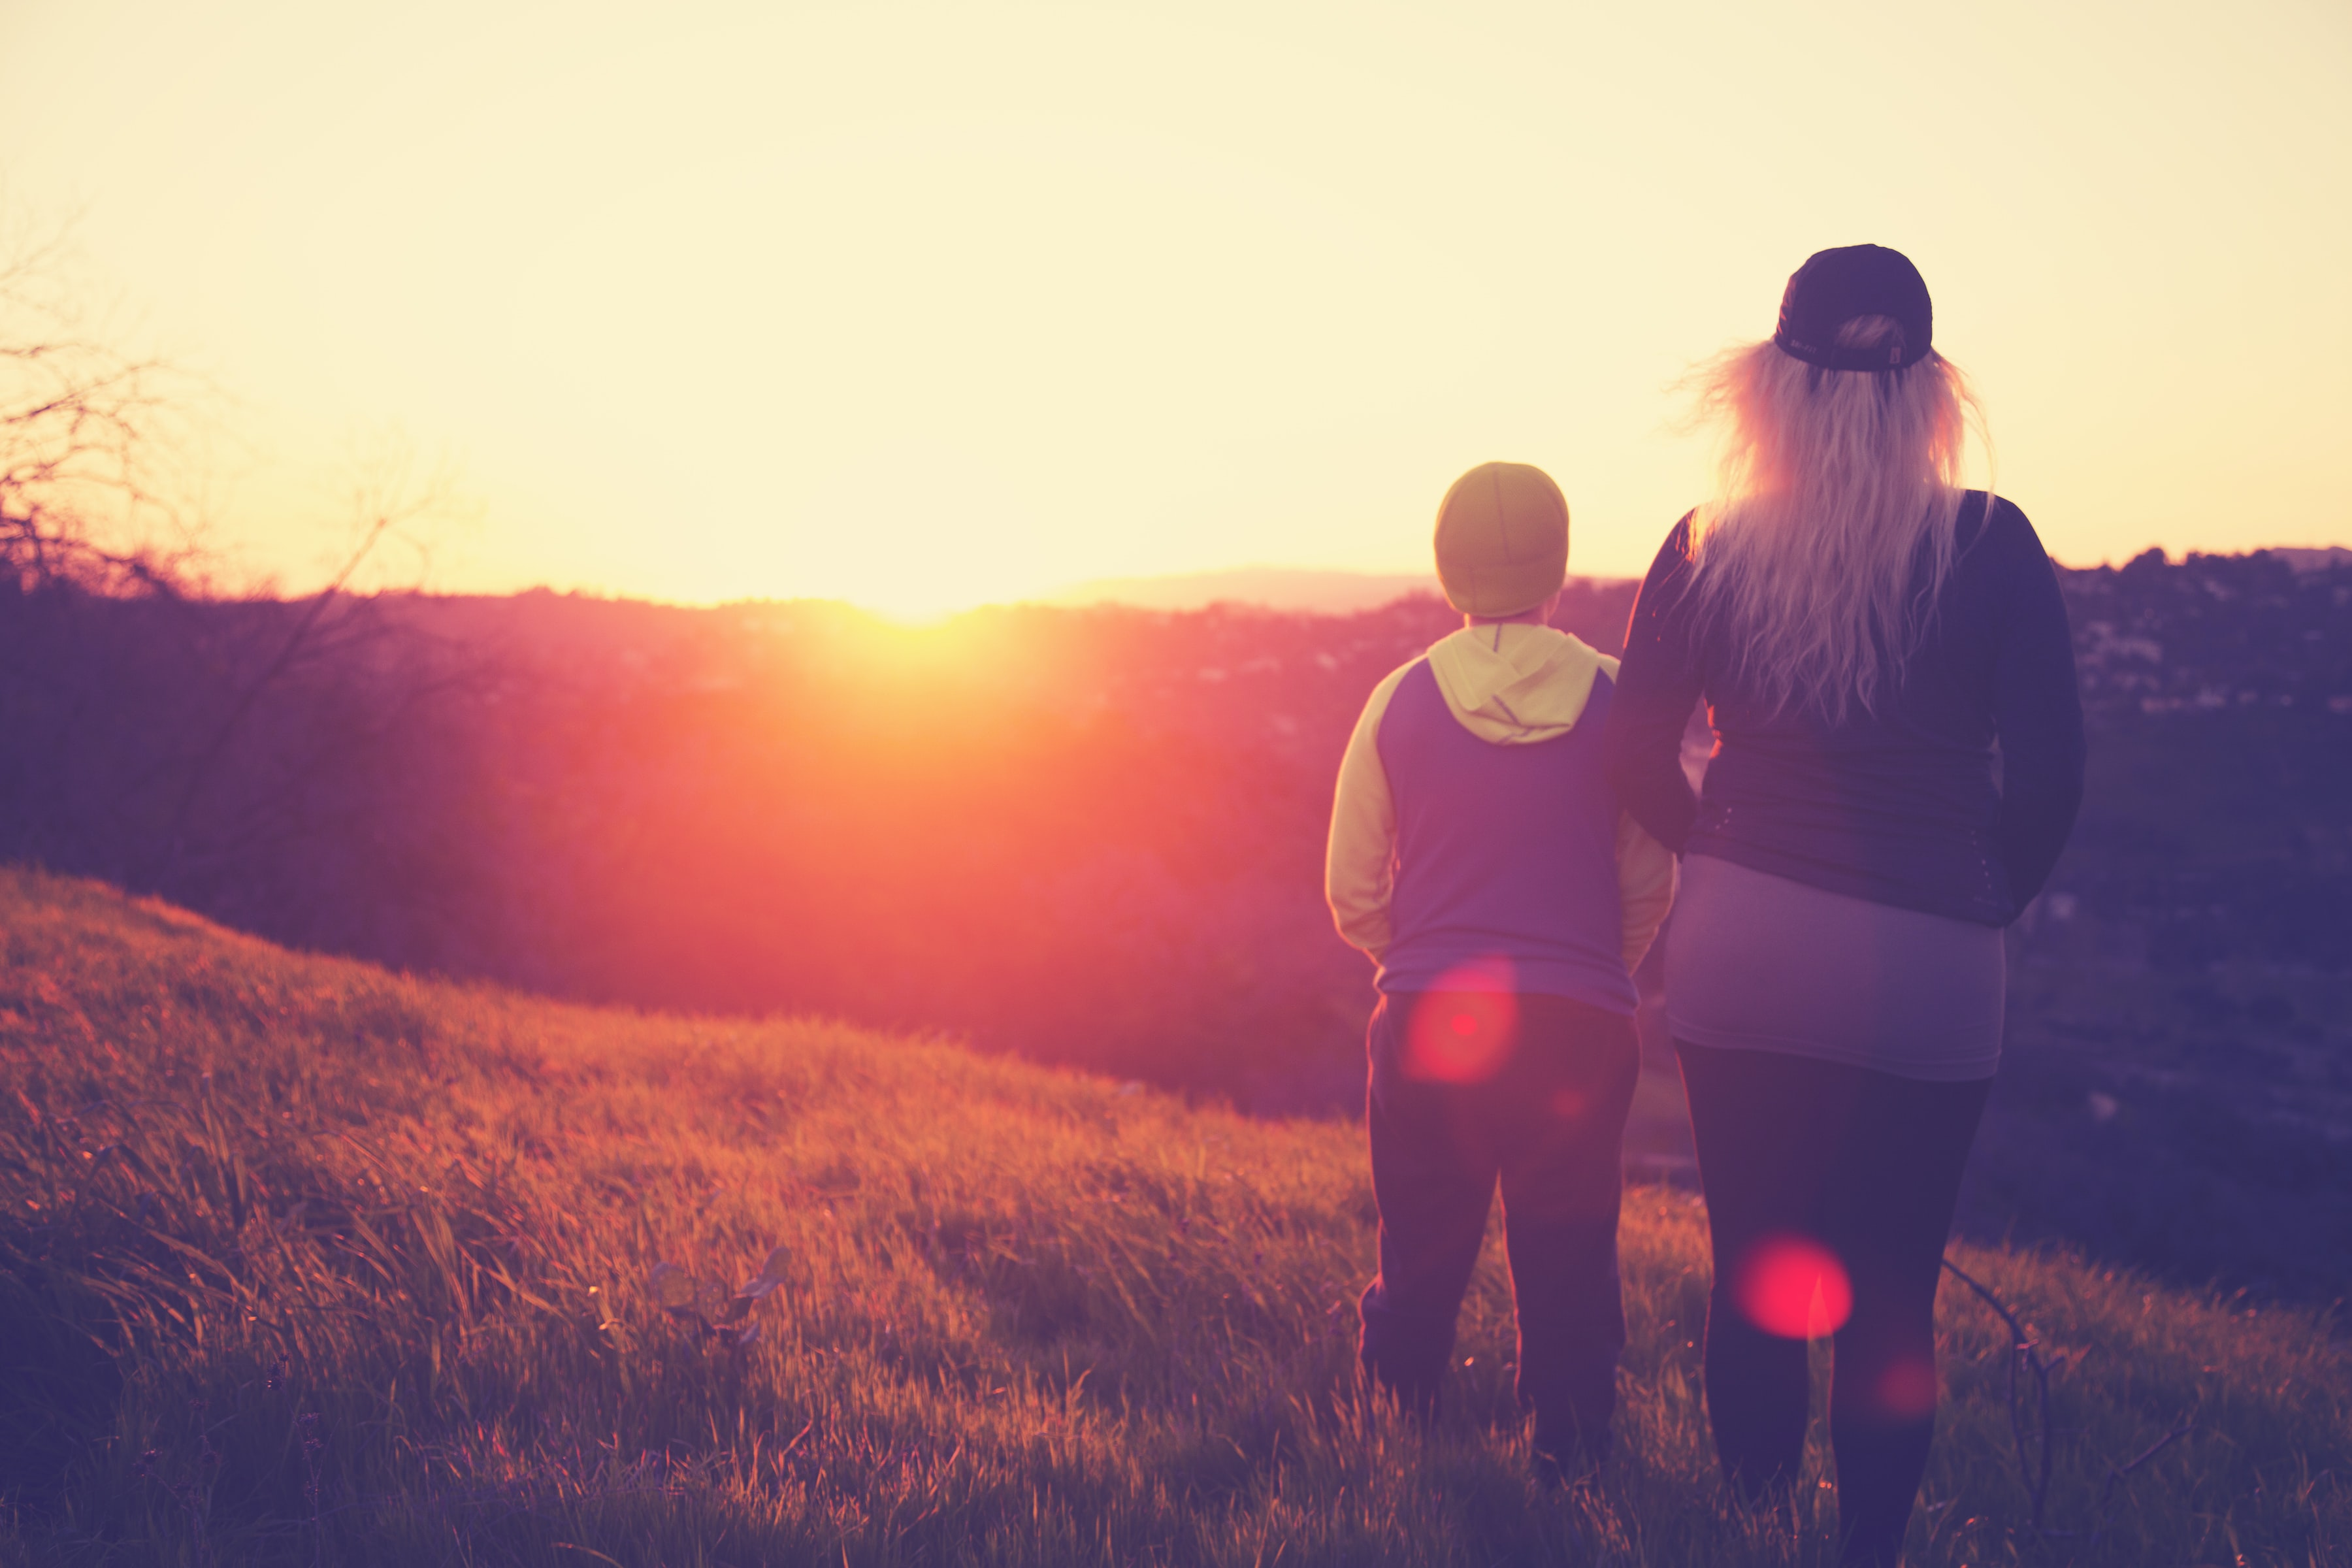 A young boy and a lady standing on a hill in Los Angeles watching the sunset